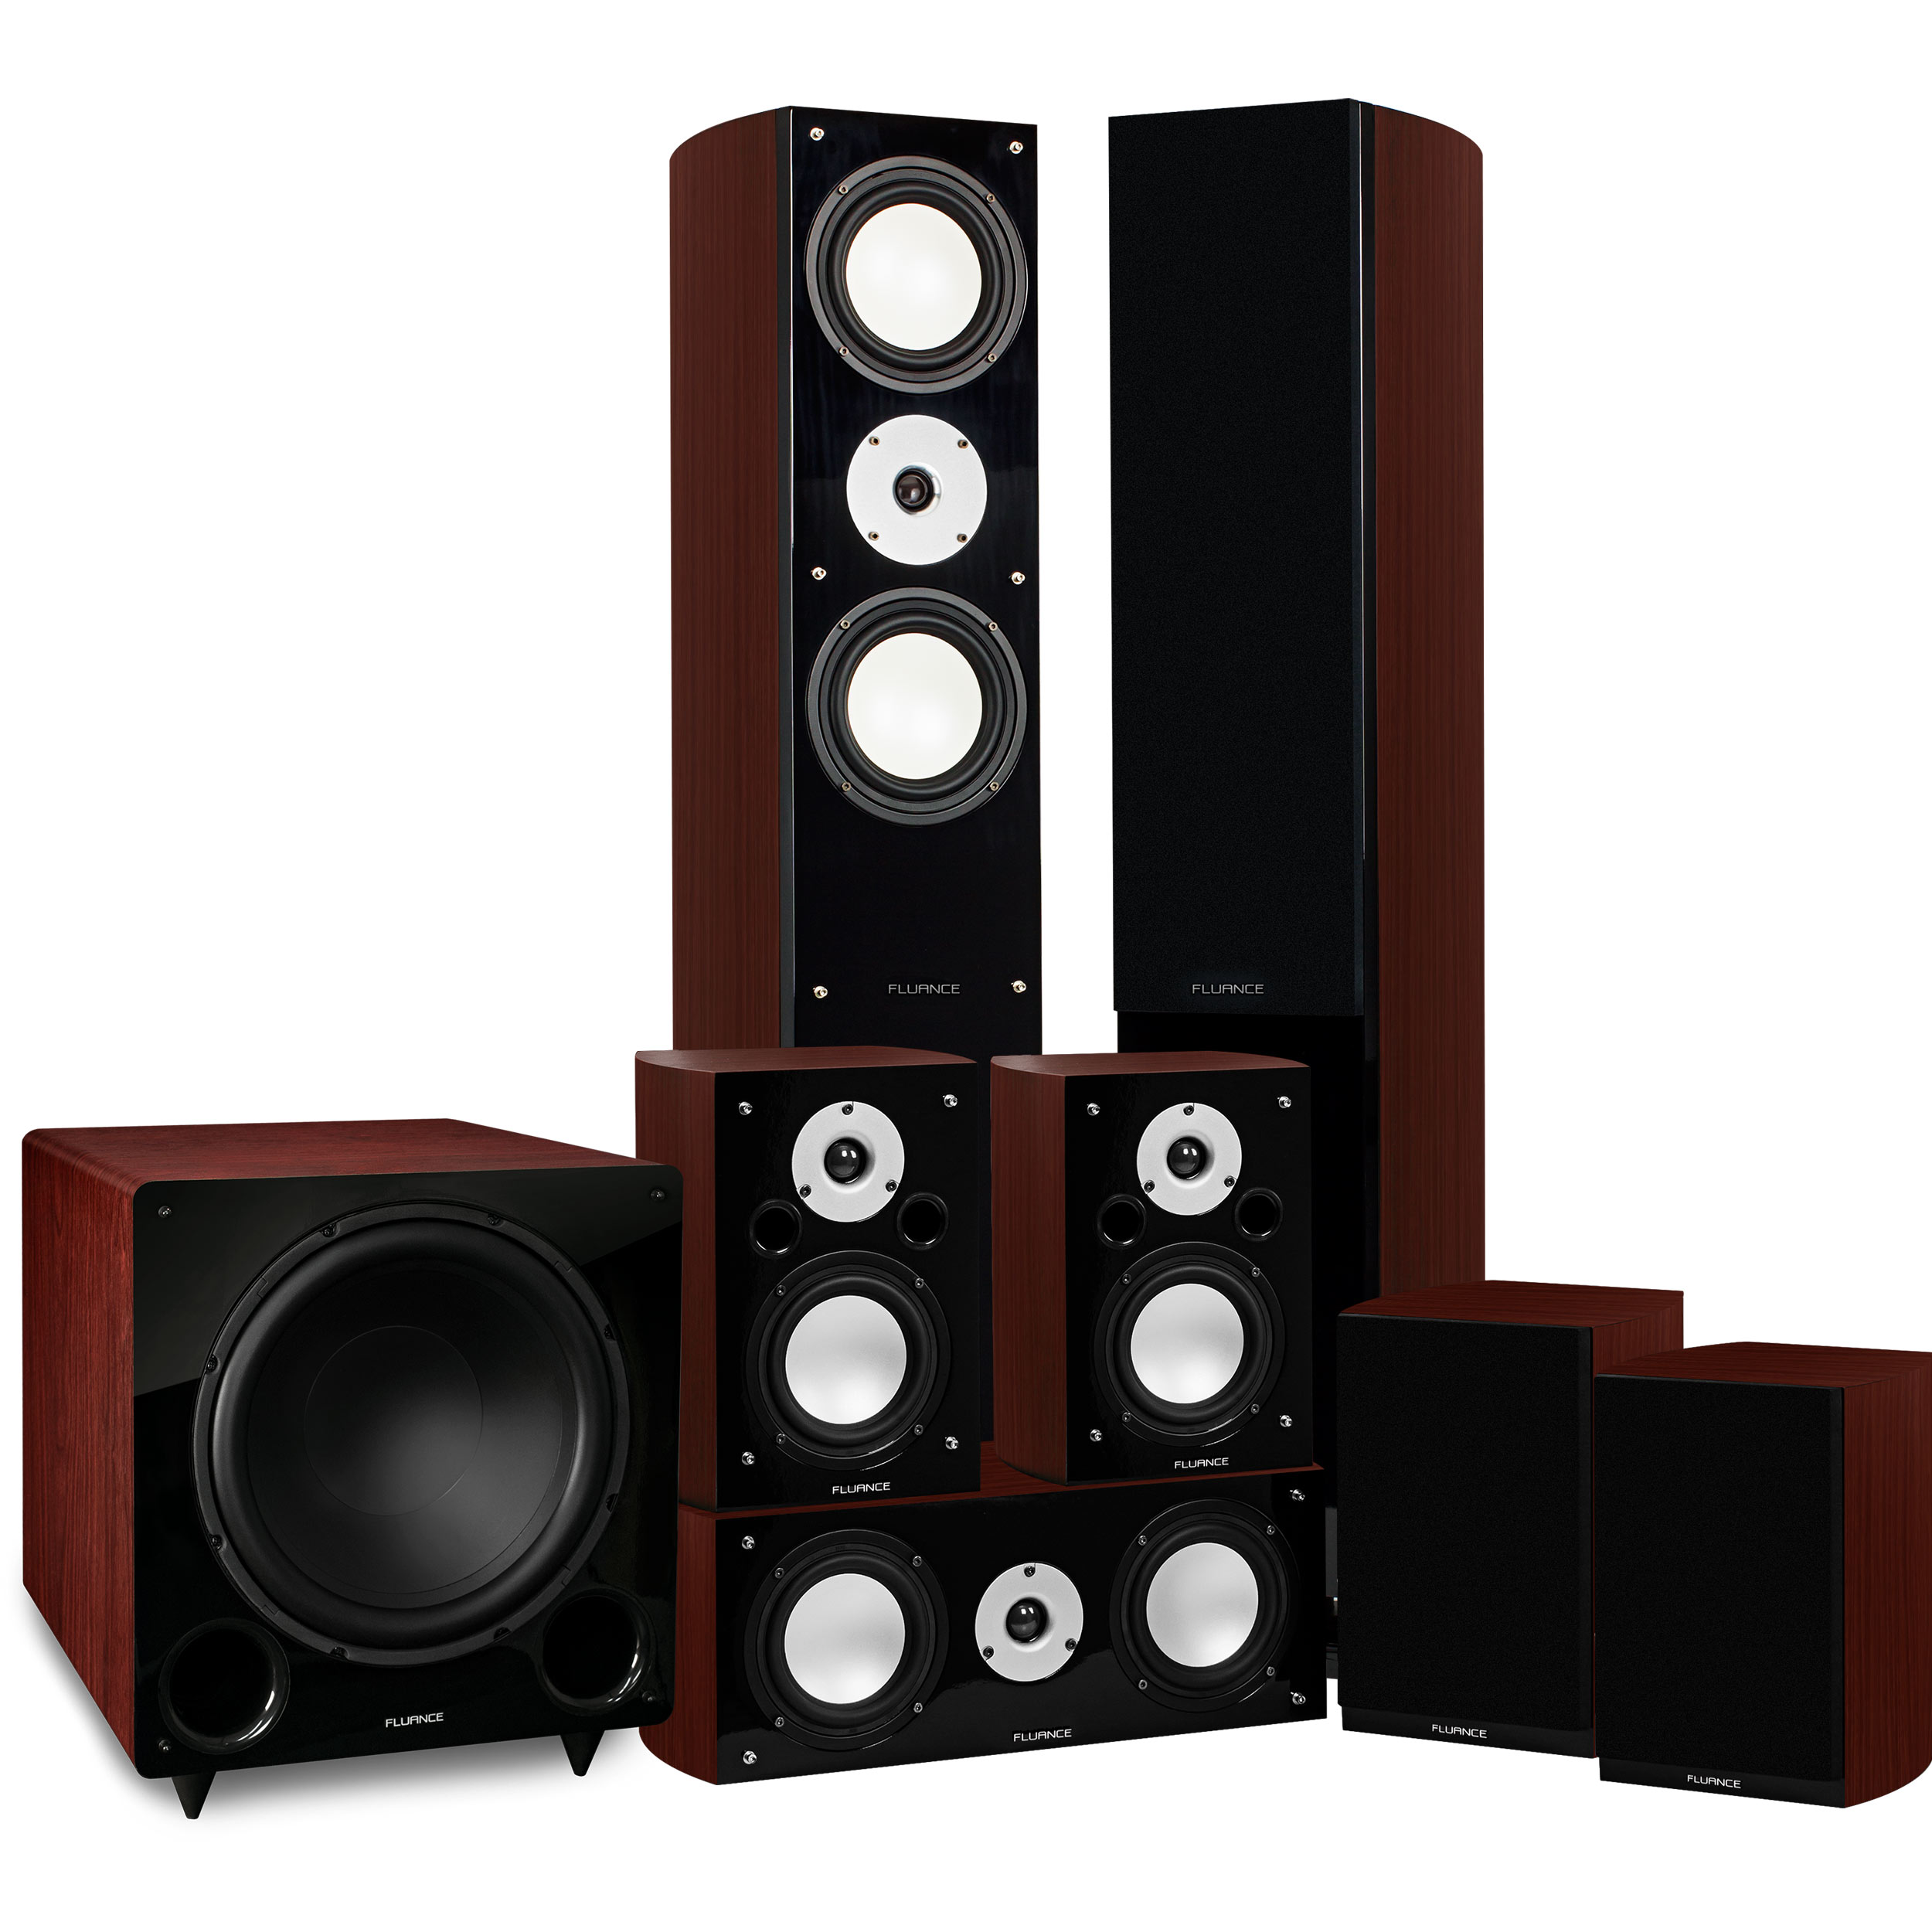 Fluance Reference Series Surround Sound Home Theater 7.1 Channel Speaker System including Three-way... by Fluance